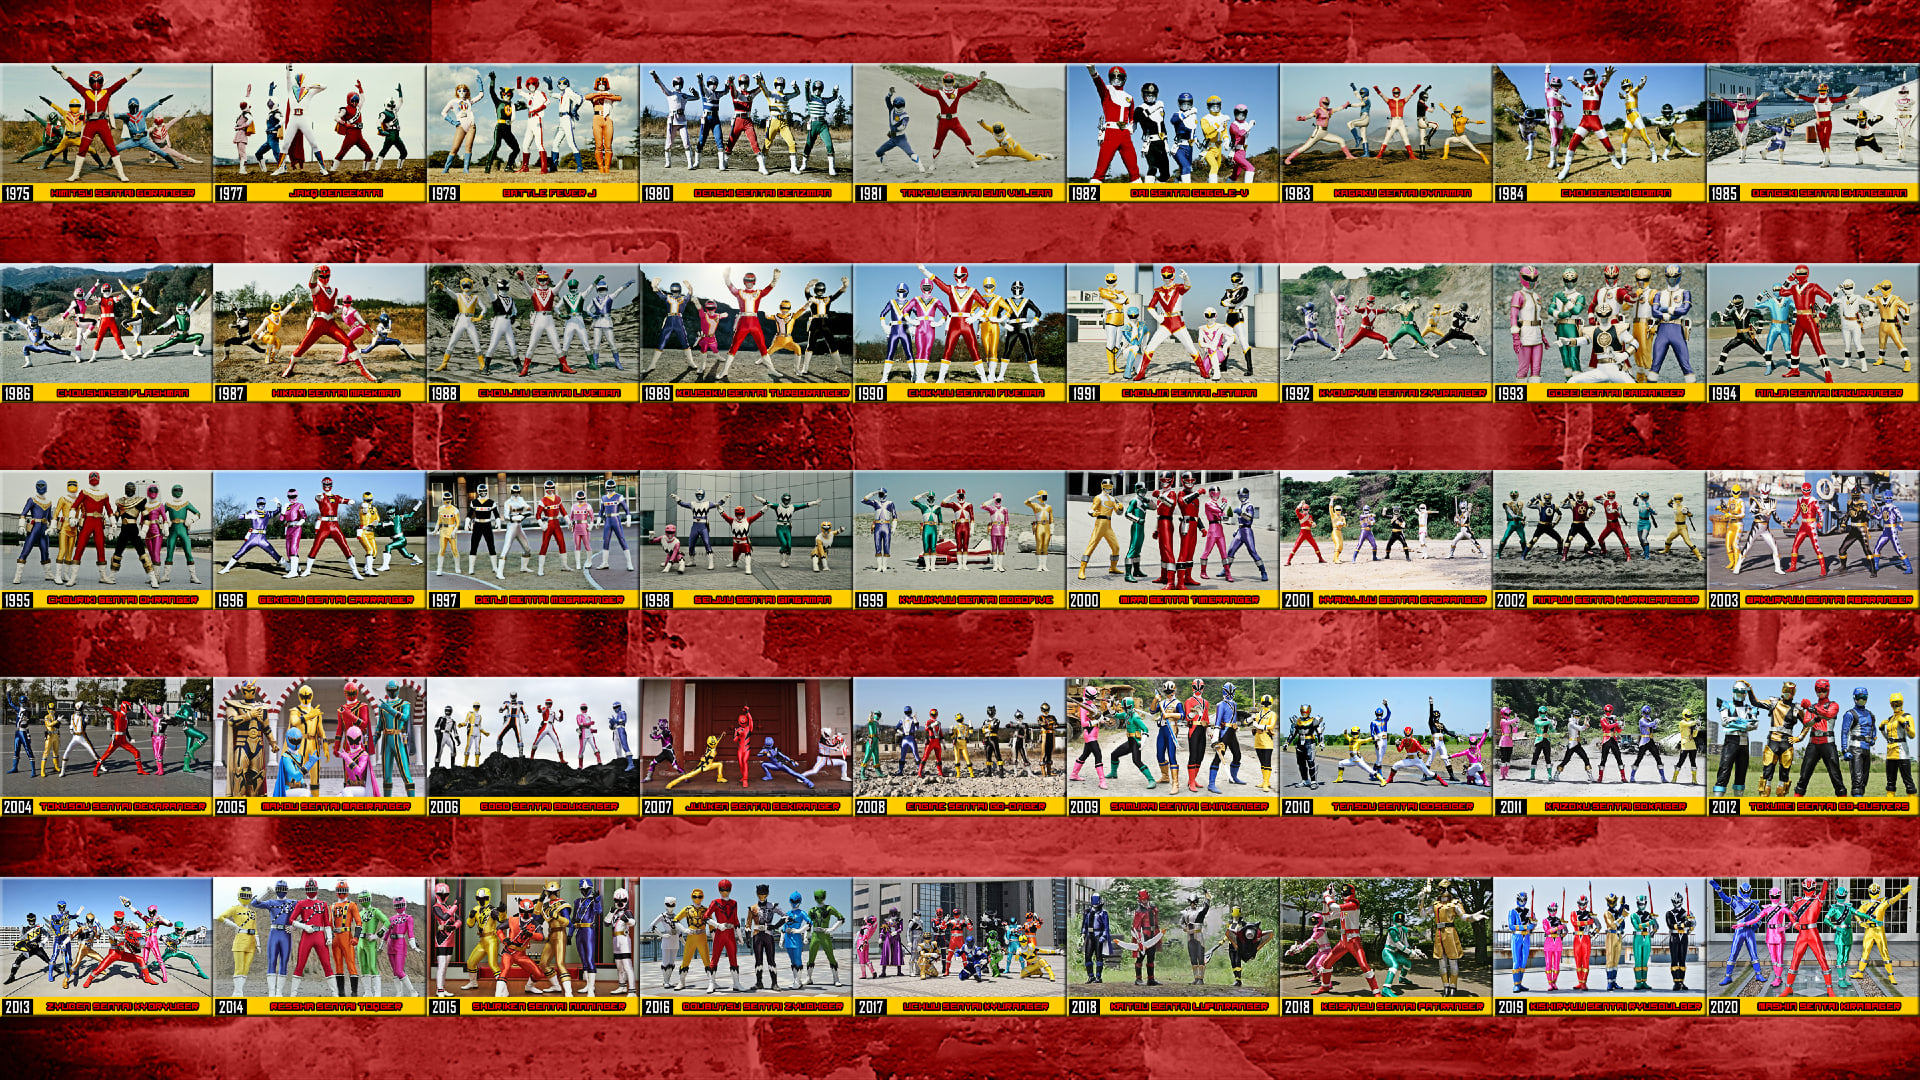 Super Sentai - Season 34 Episode 1 : The Gosei Angels Descend